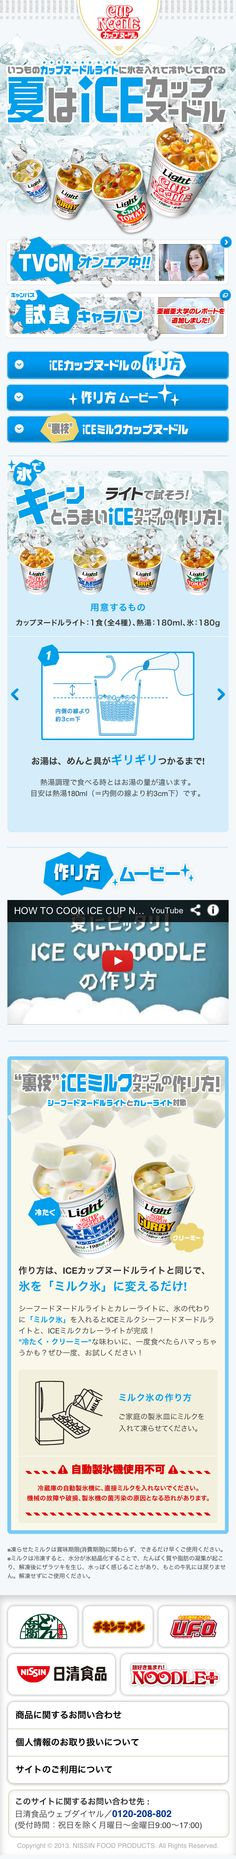 http://ice.cupnoodle.jp/s/index.html